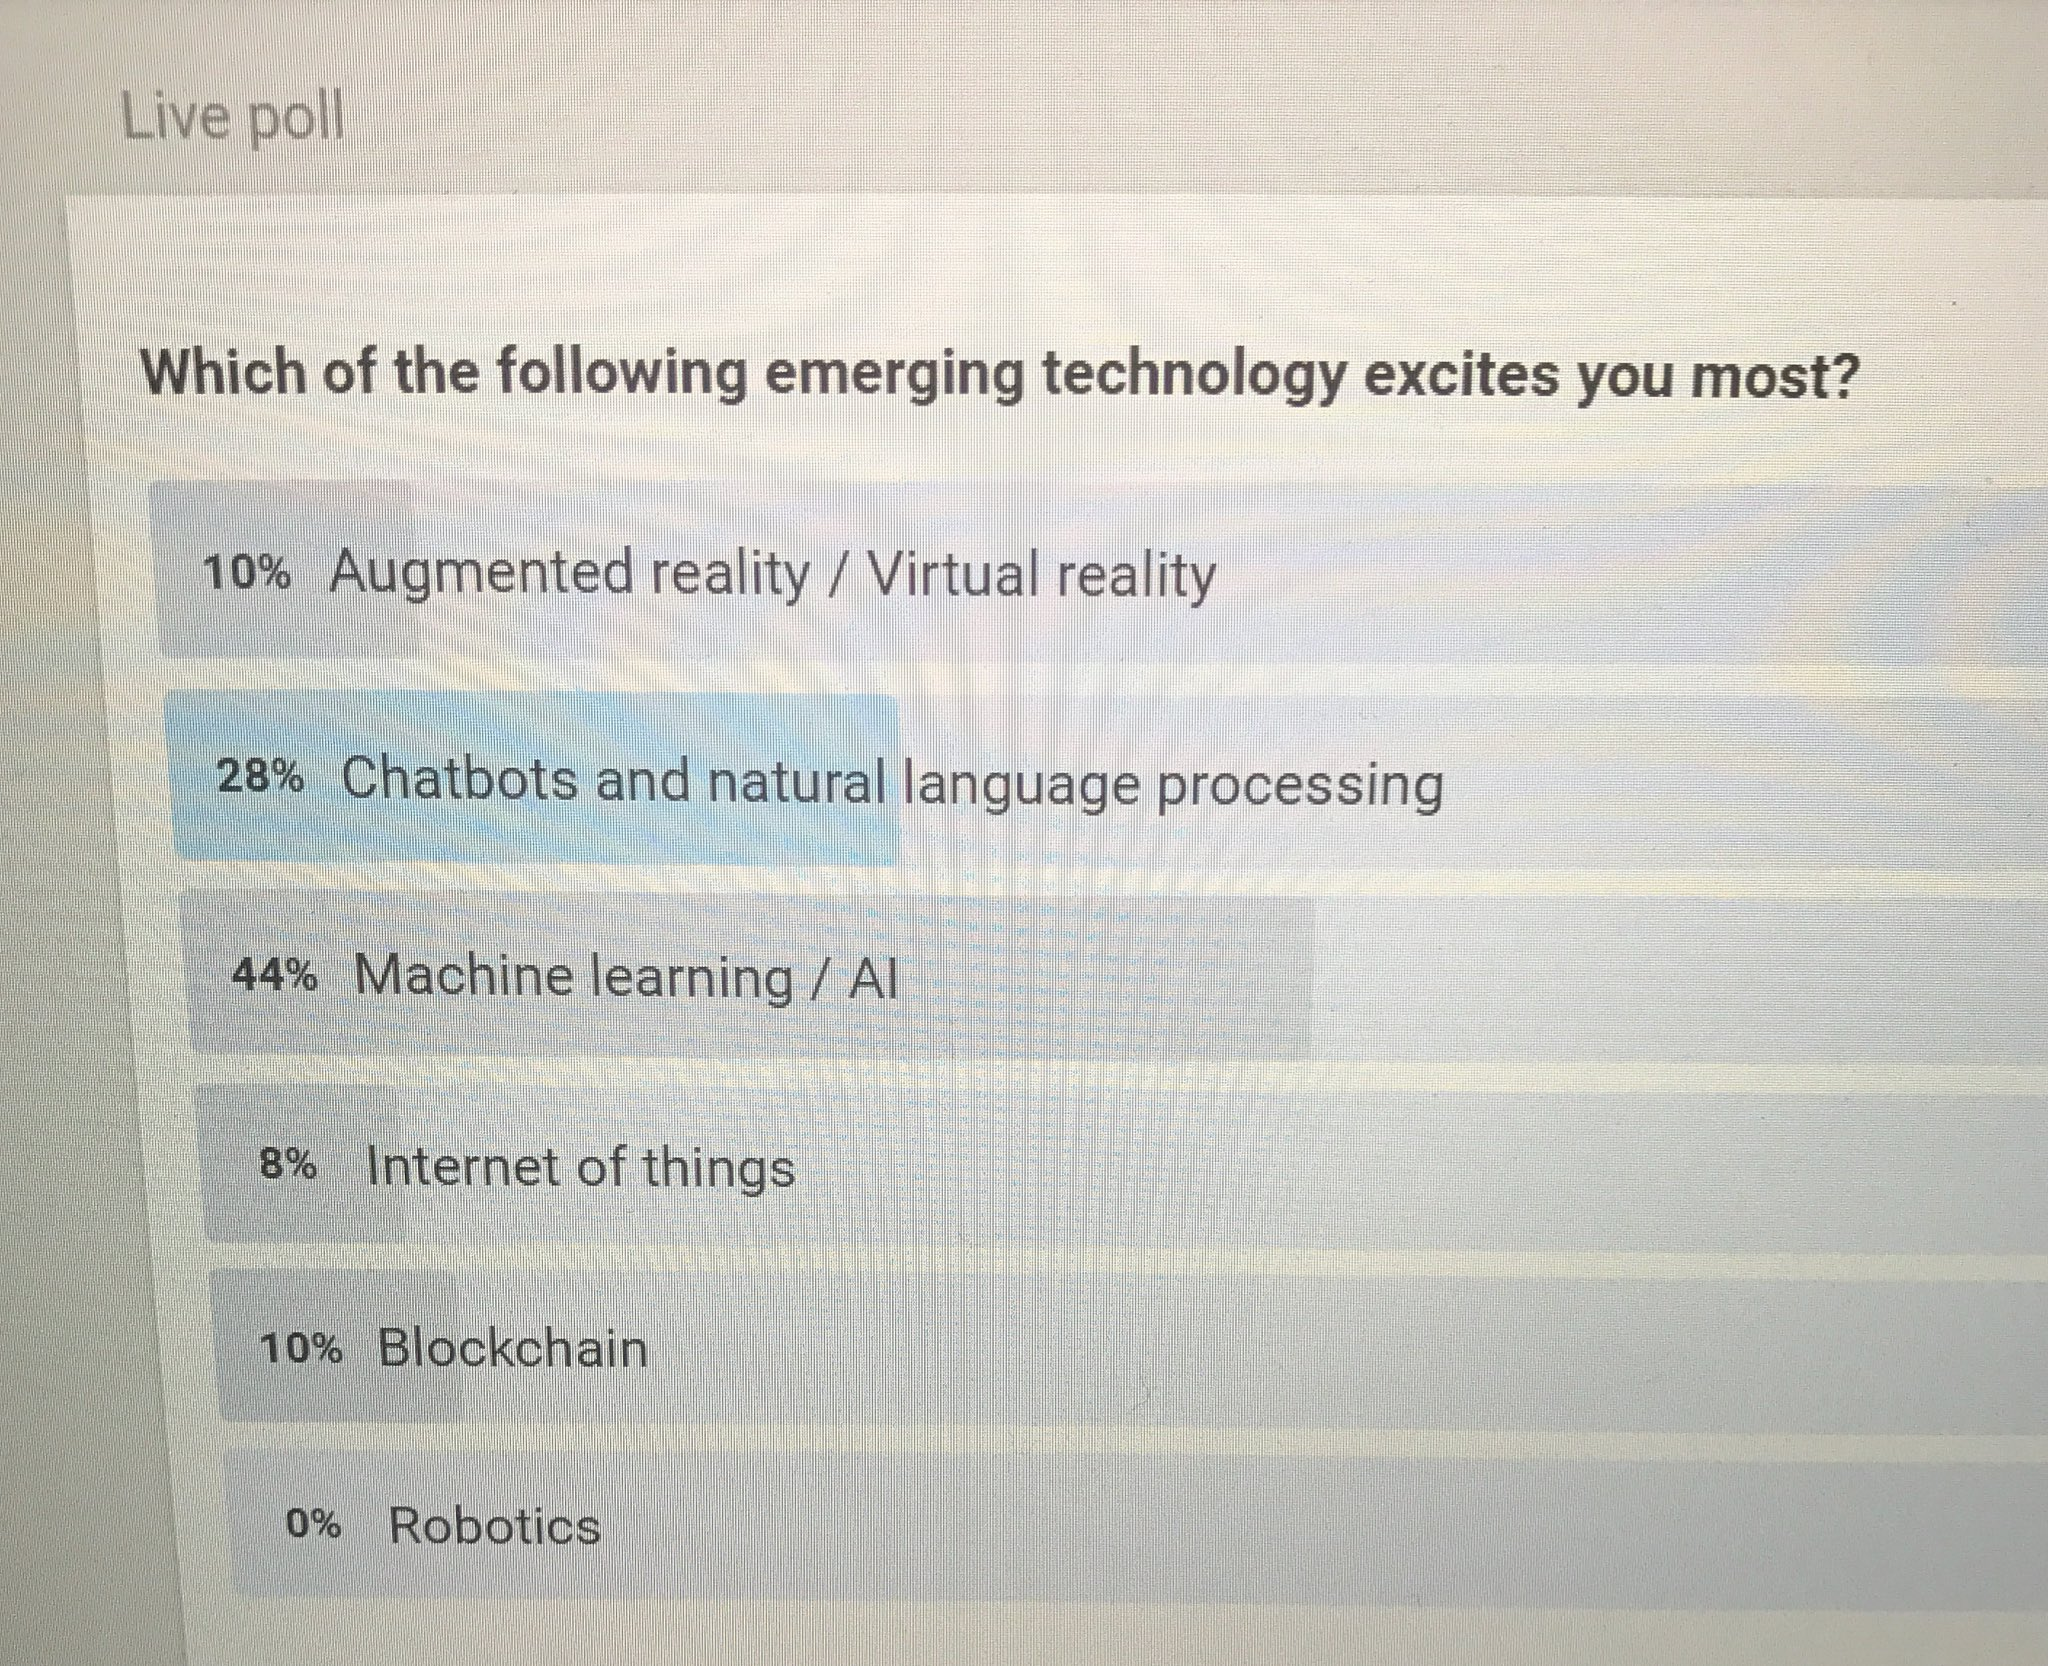 Machine learning / AI technology excites #efteurope attendees most. #eyefortravel #travel https://t.co/CZCAeqqBpF